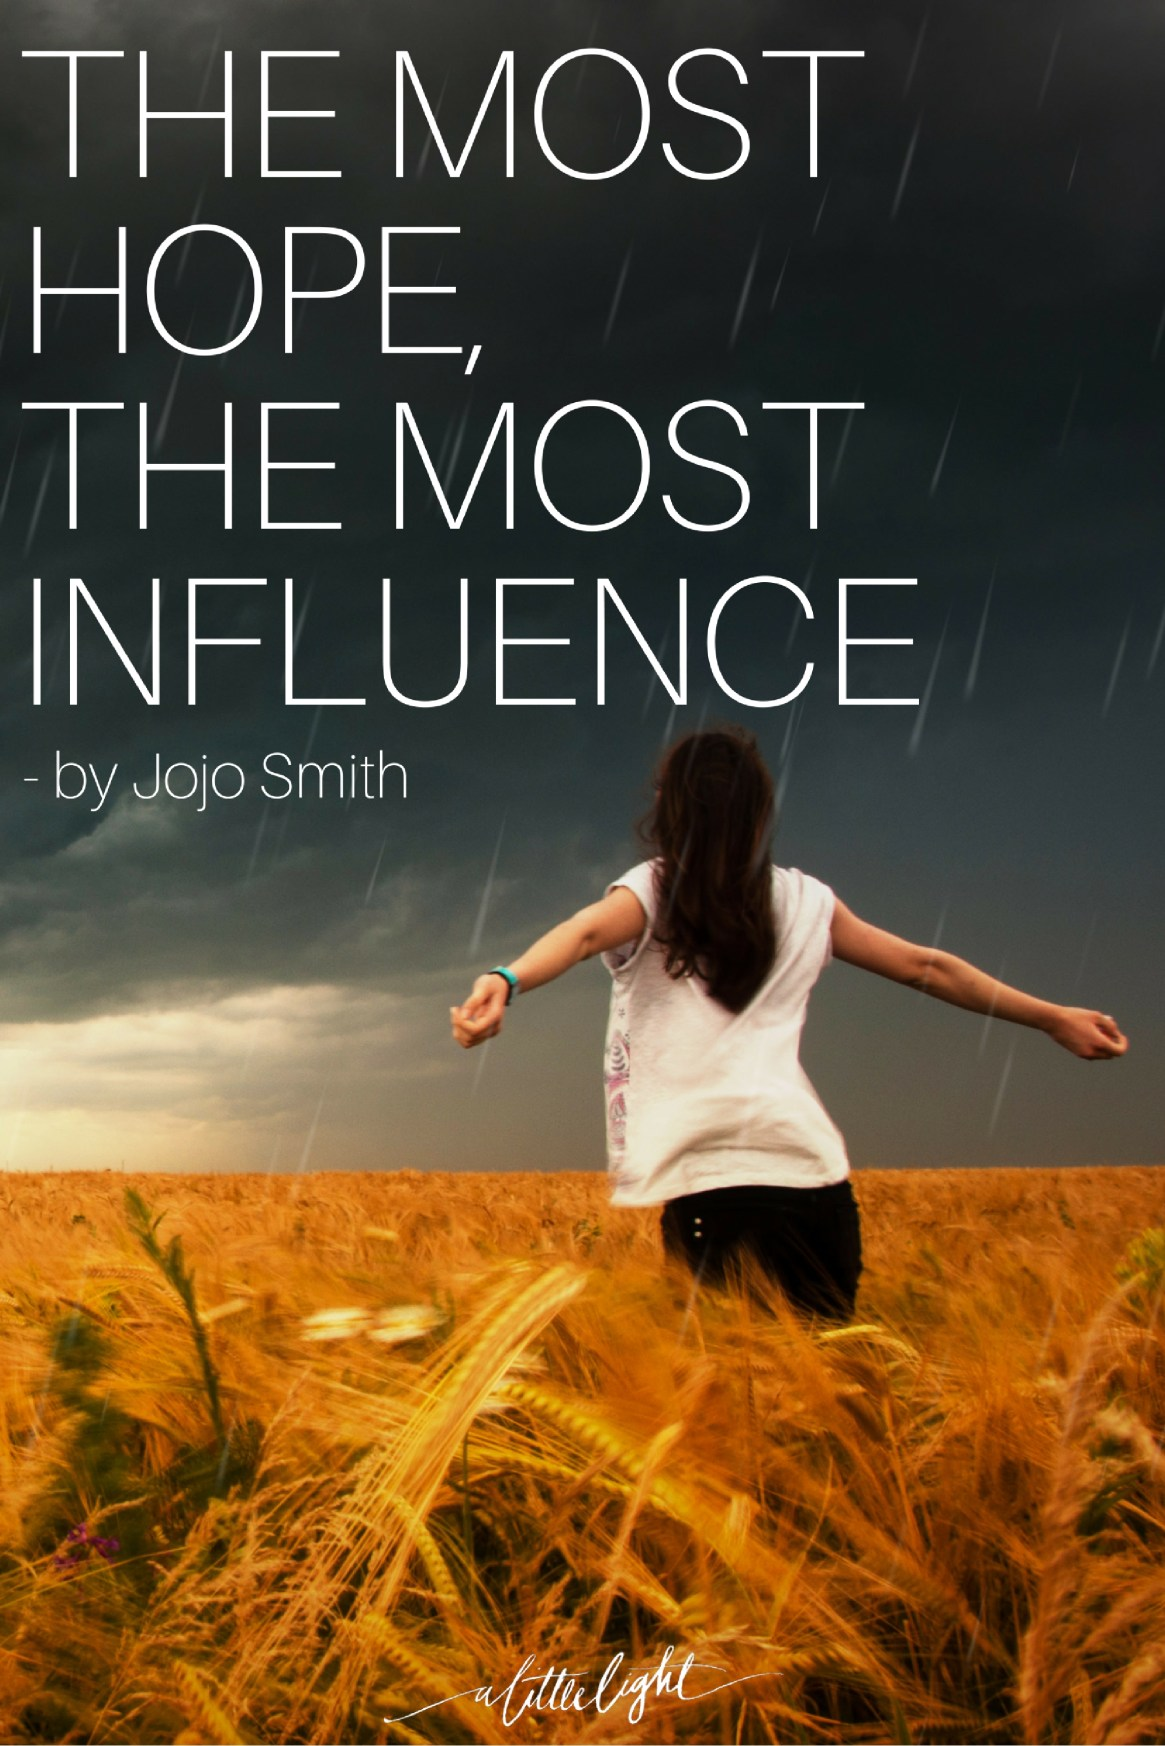 The Most Hope, The Most Influence